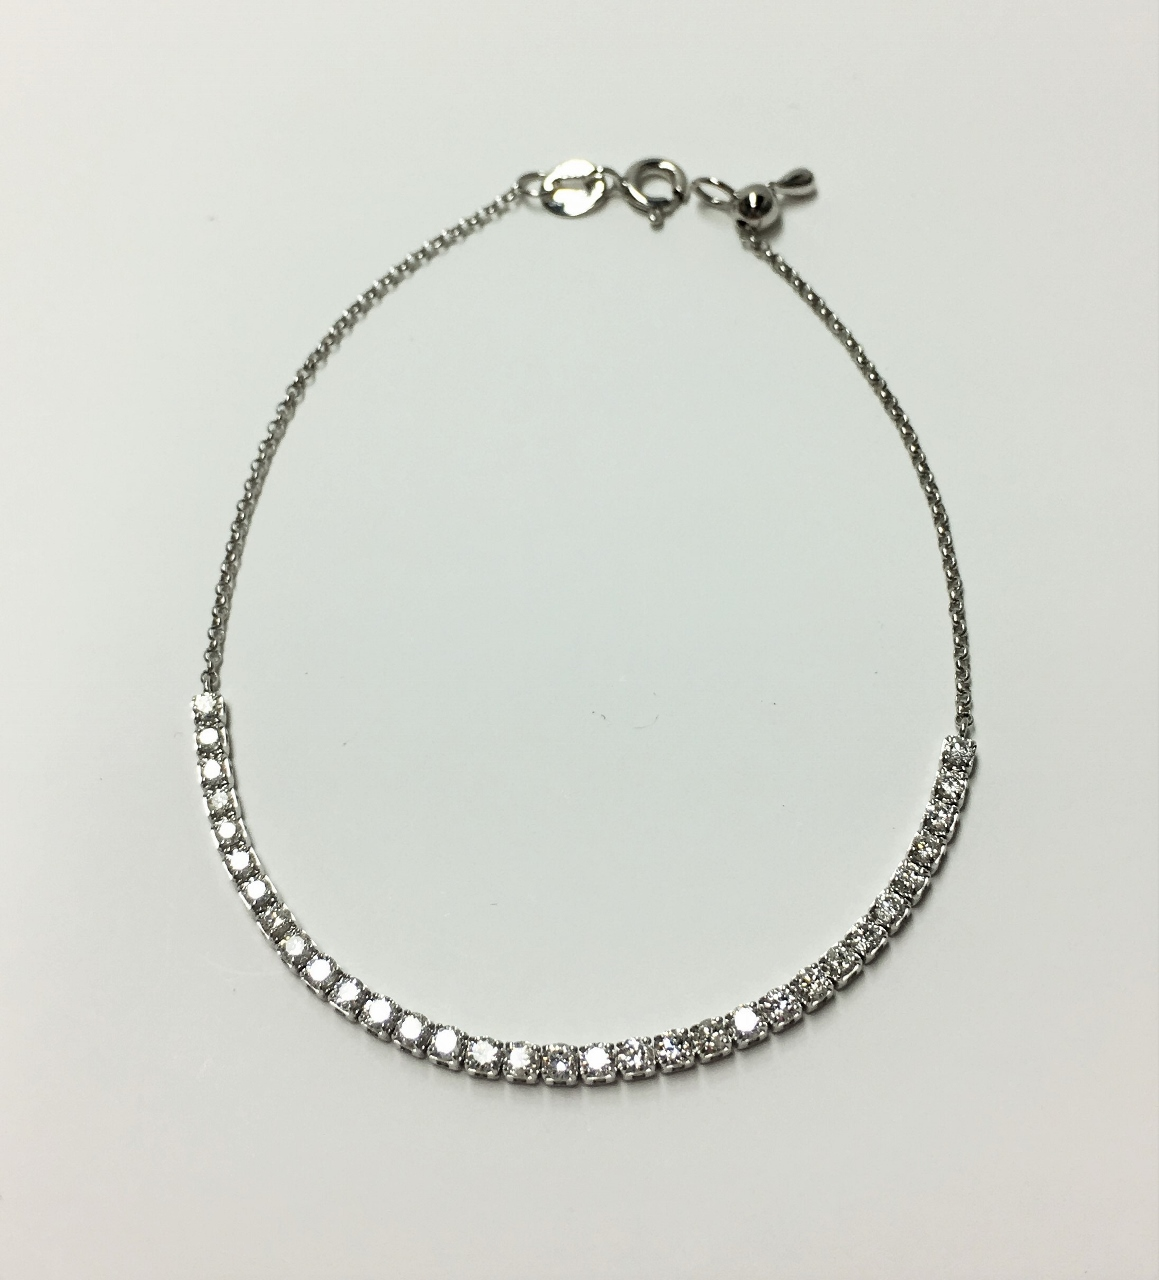 Almost 1 Carat Total Weight White Gold Diamond Bracelet